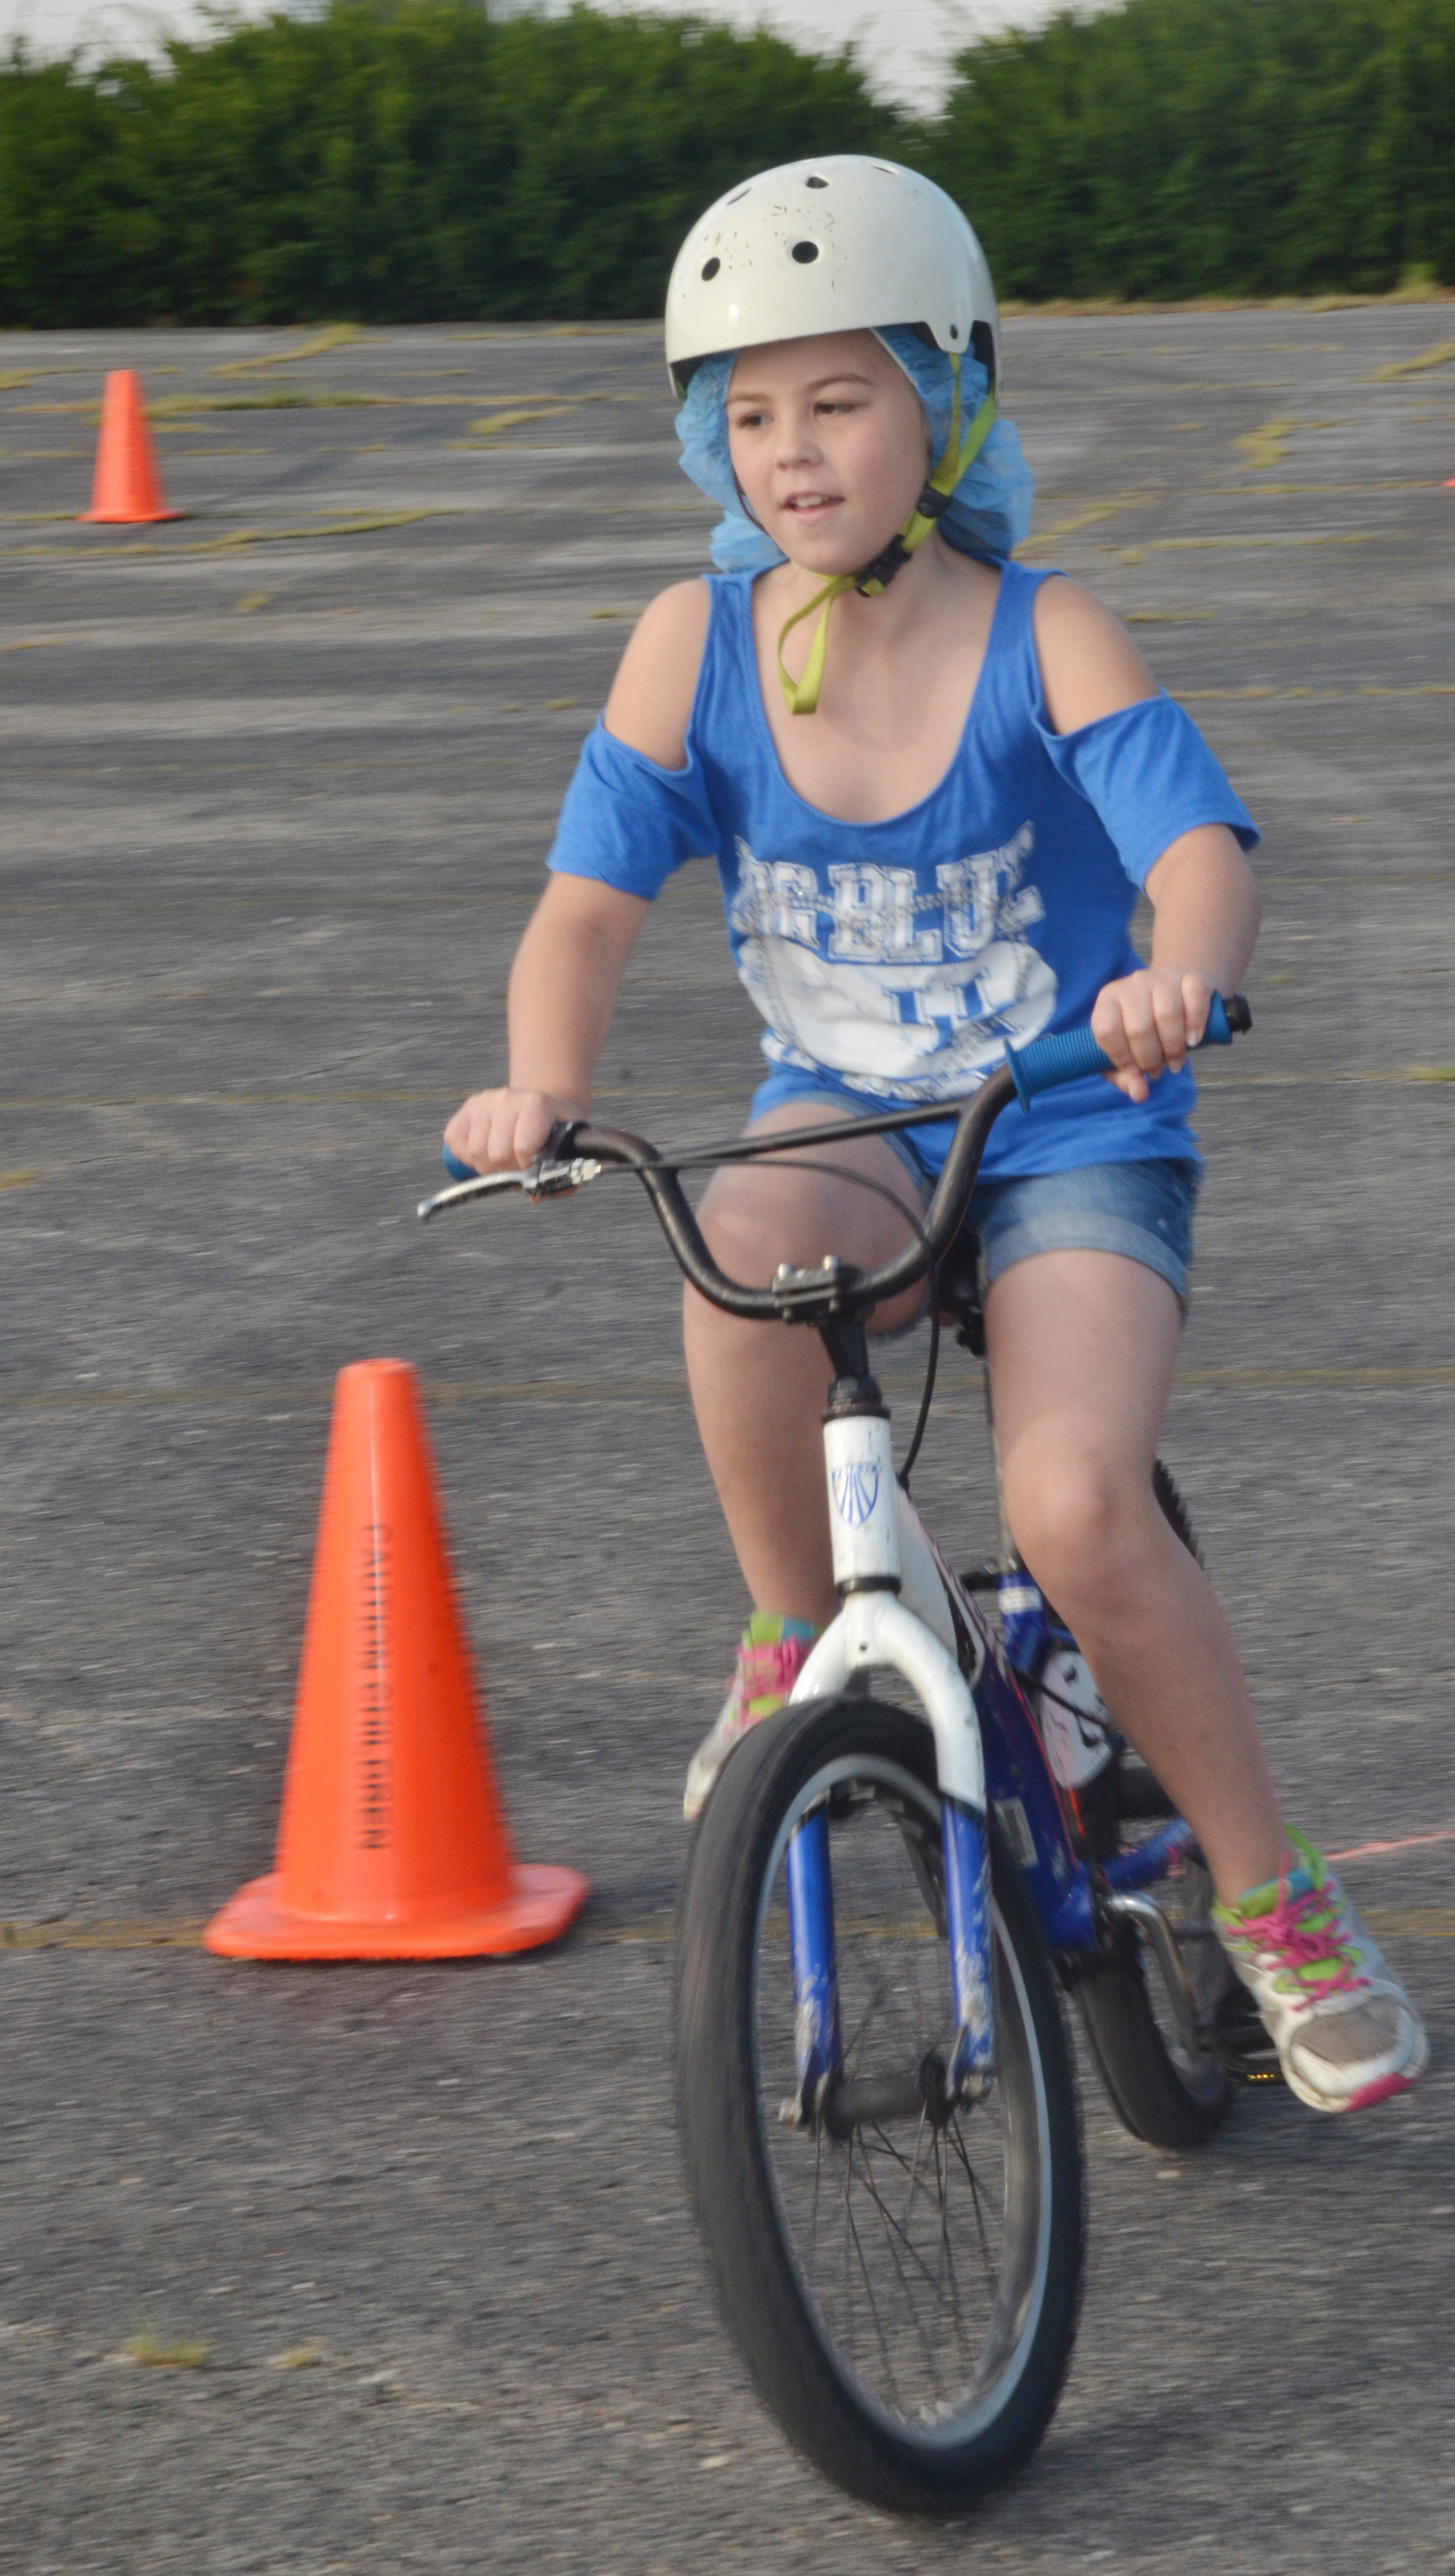 CES fourth-grader Chloe Bates rides her bike through the obstacle course.